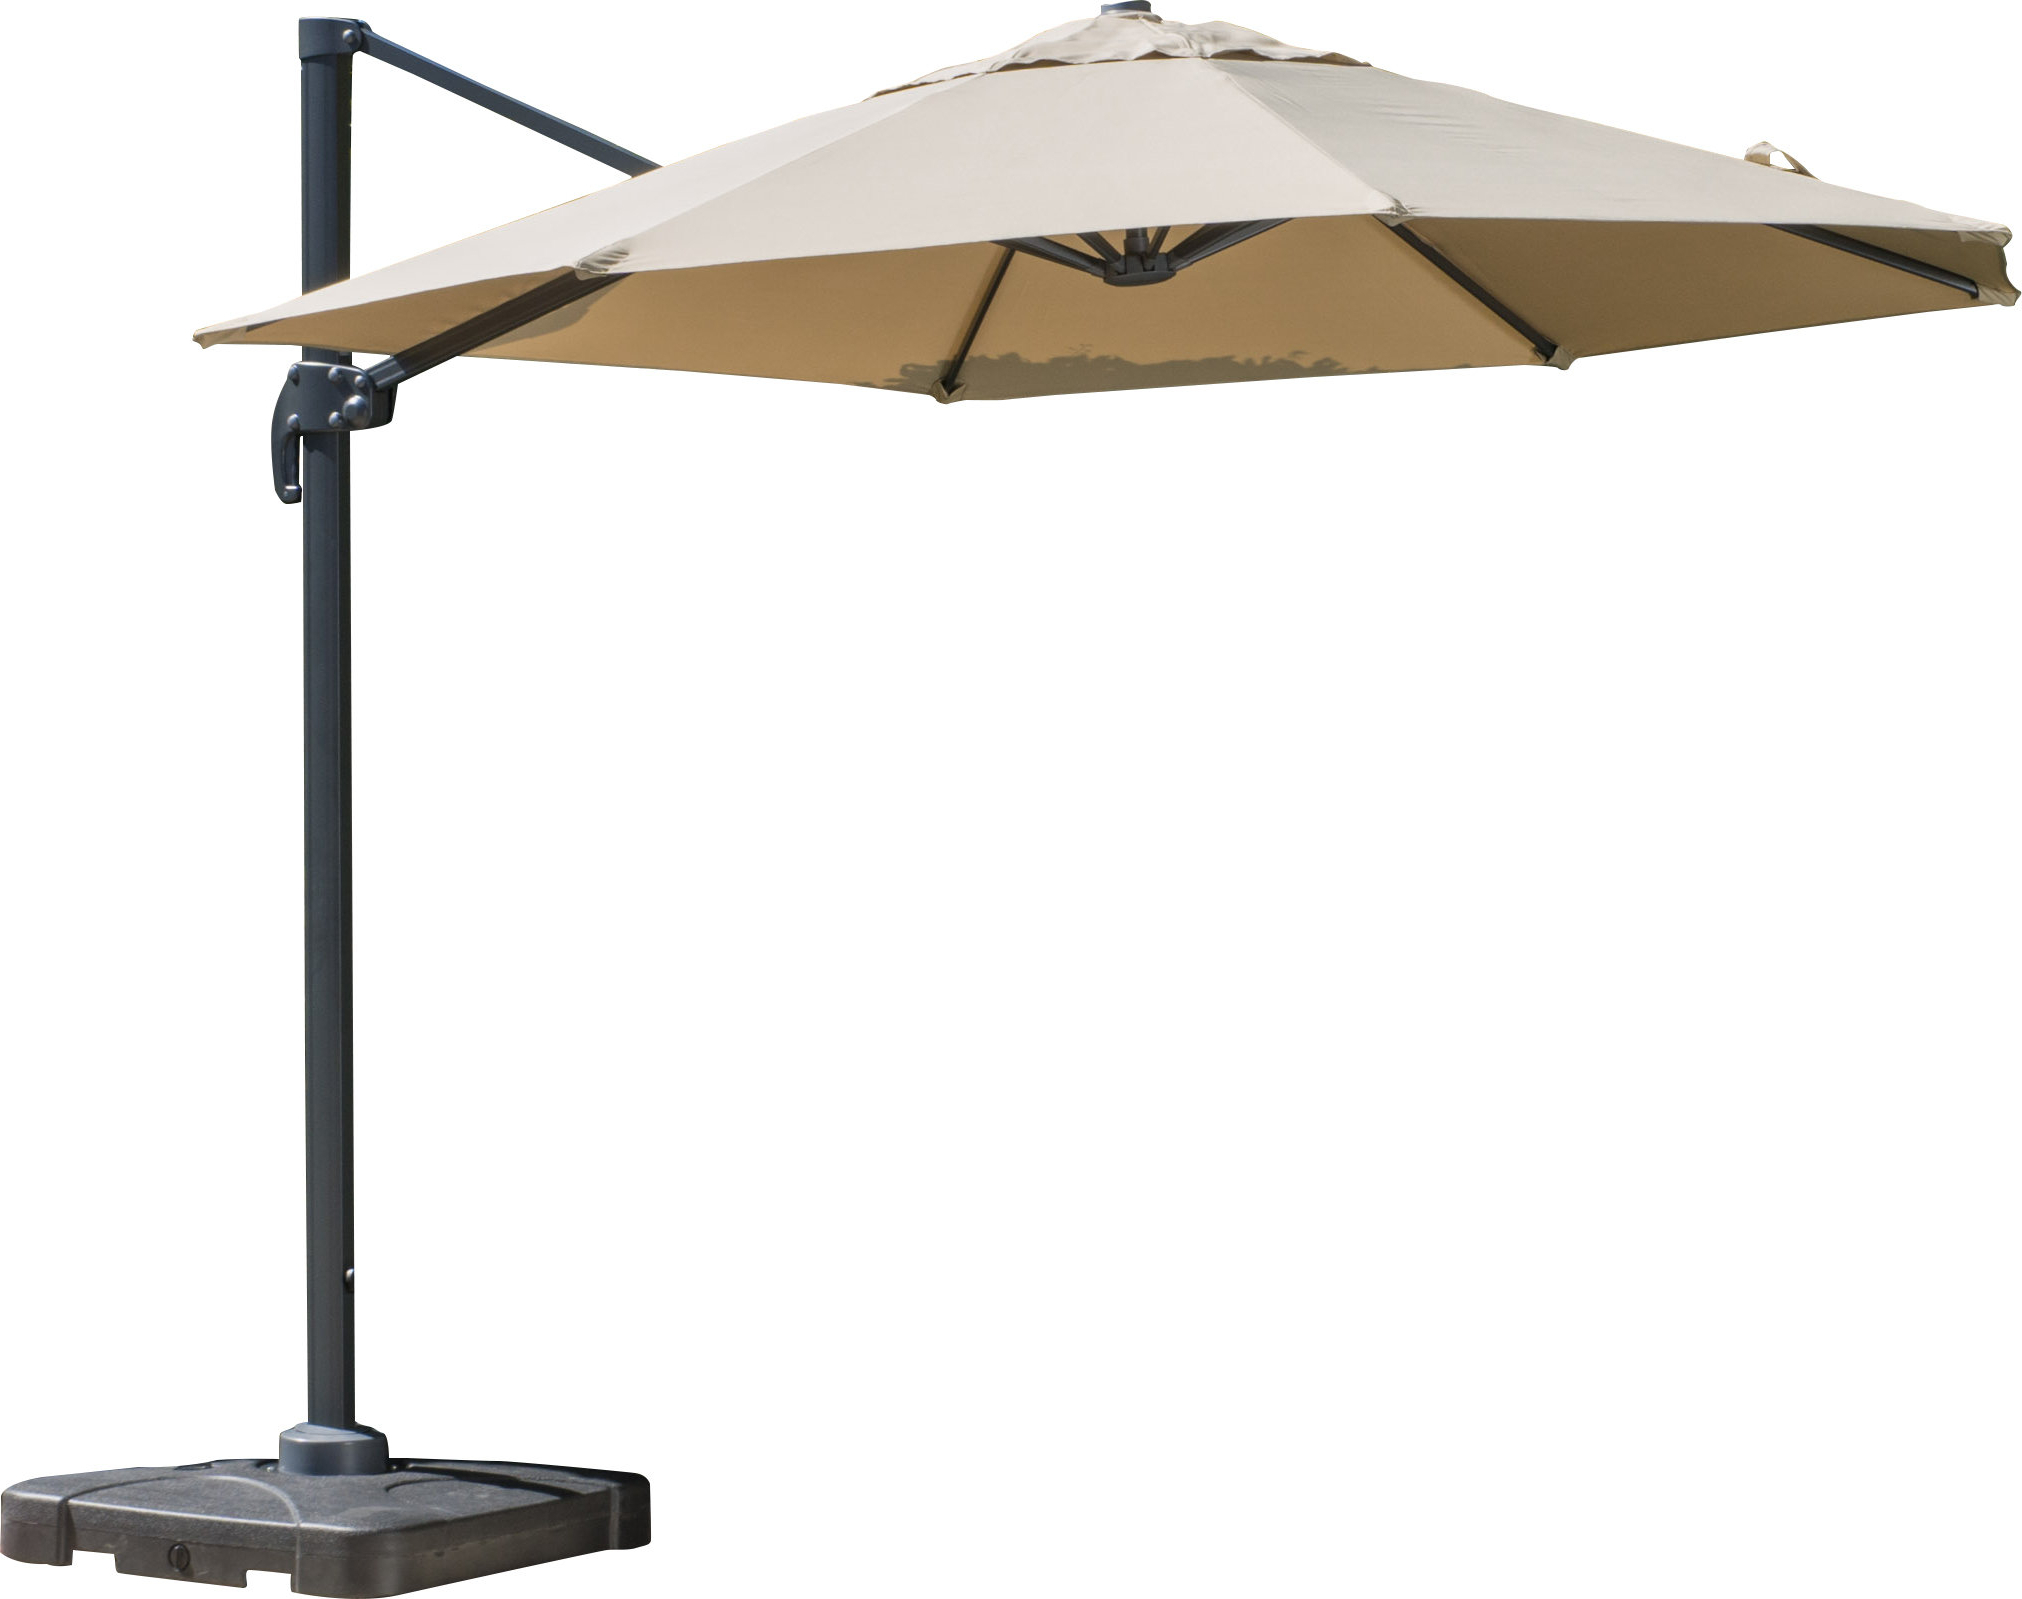 Well Known Muhammad Fullerton Cantilever Umbrellas Intended For Bellana Cantilever Umbrella (View 4 of 20)